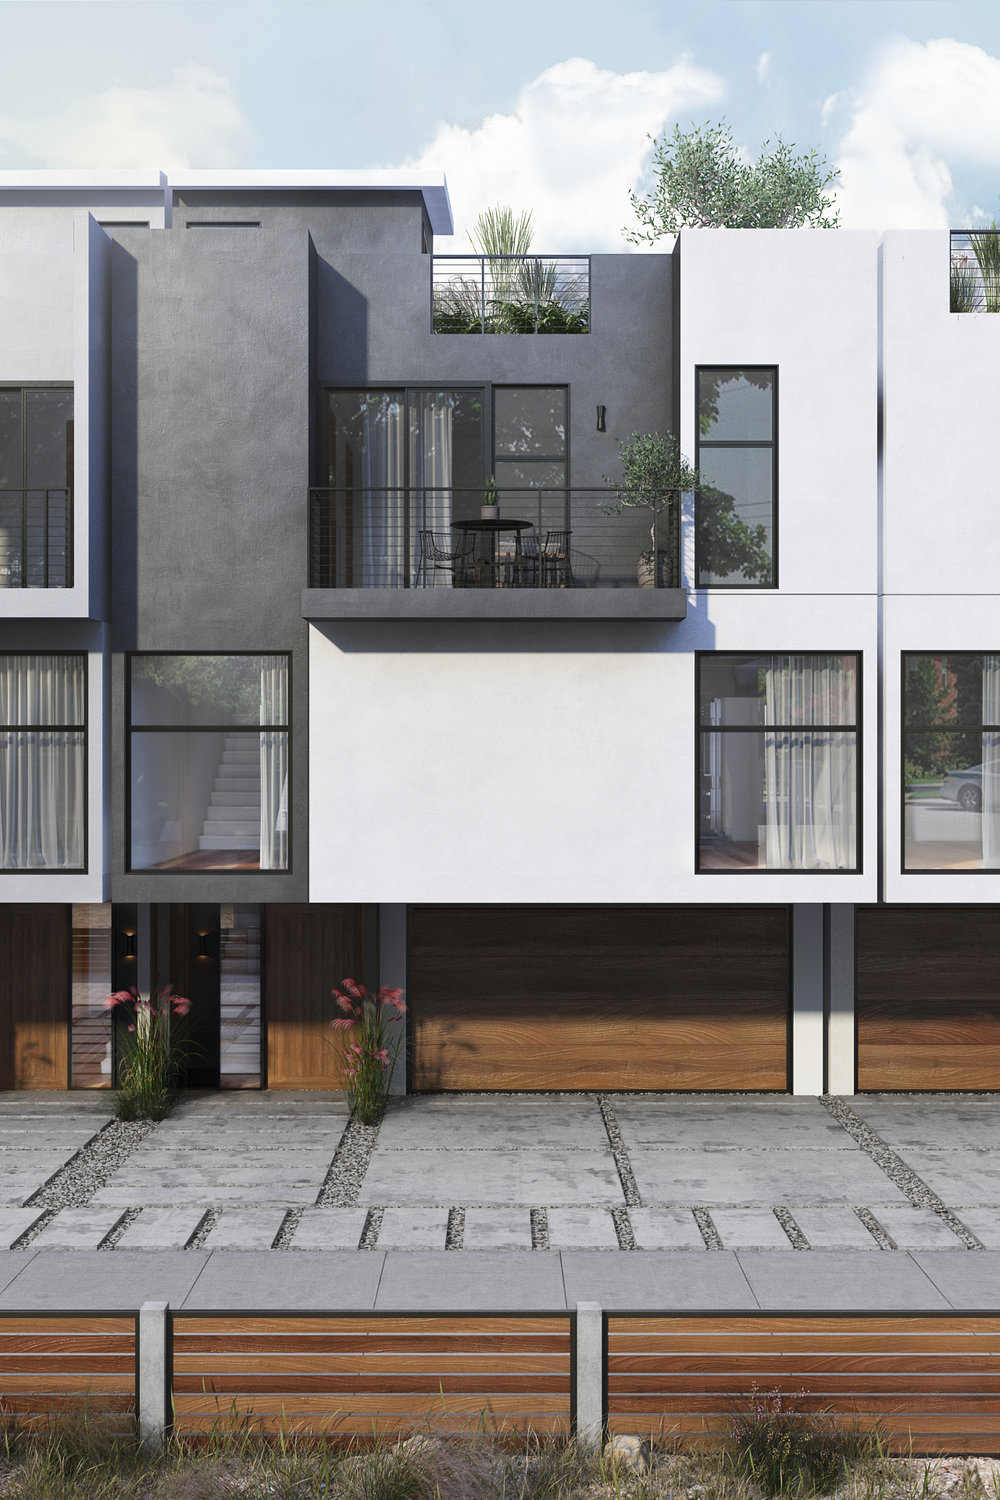 Carmen Residences - The small lot subdivision project is a new development in Hollywood, CA. The proposal includes four new, luxury townhouse-style single family residences.